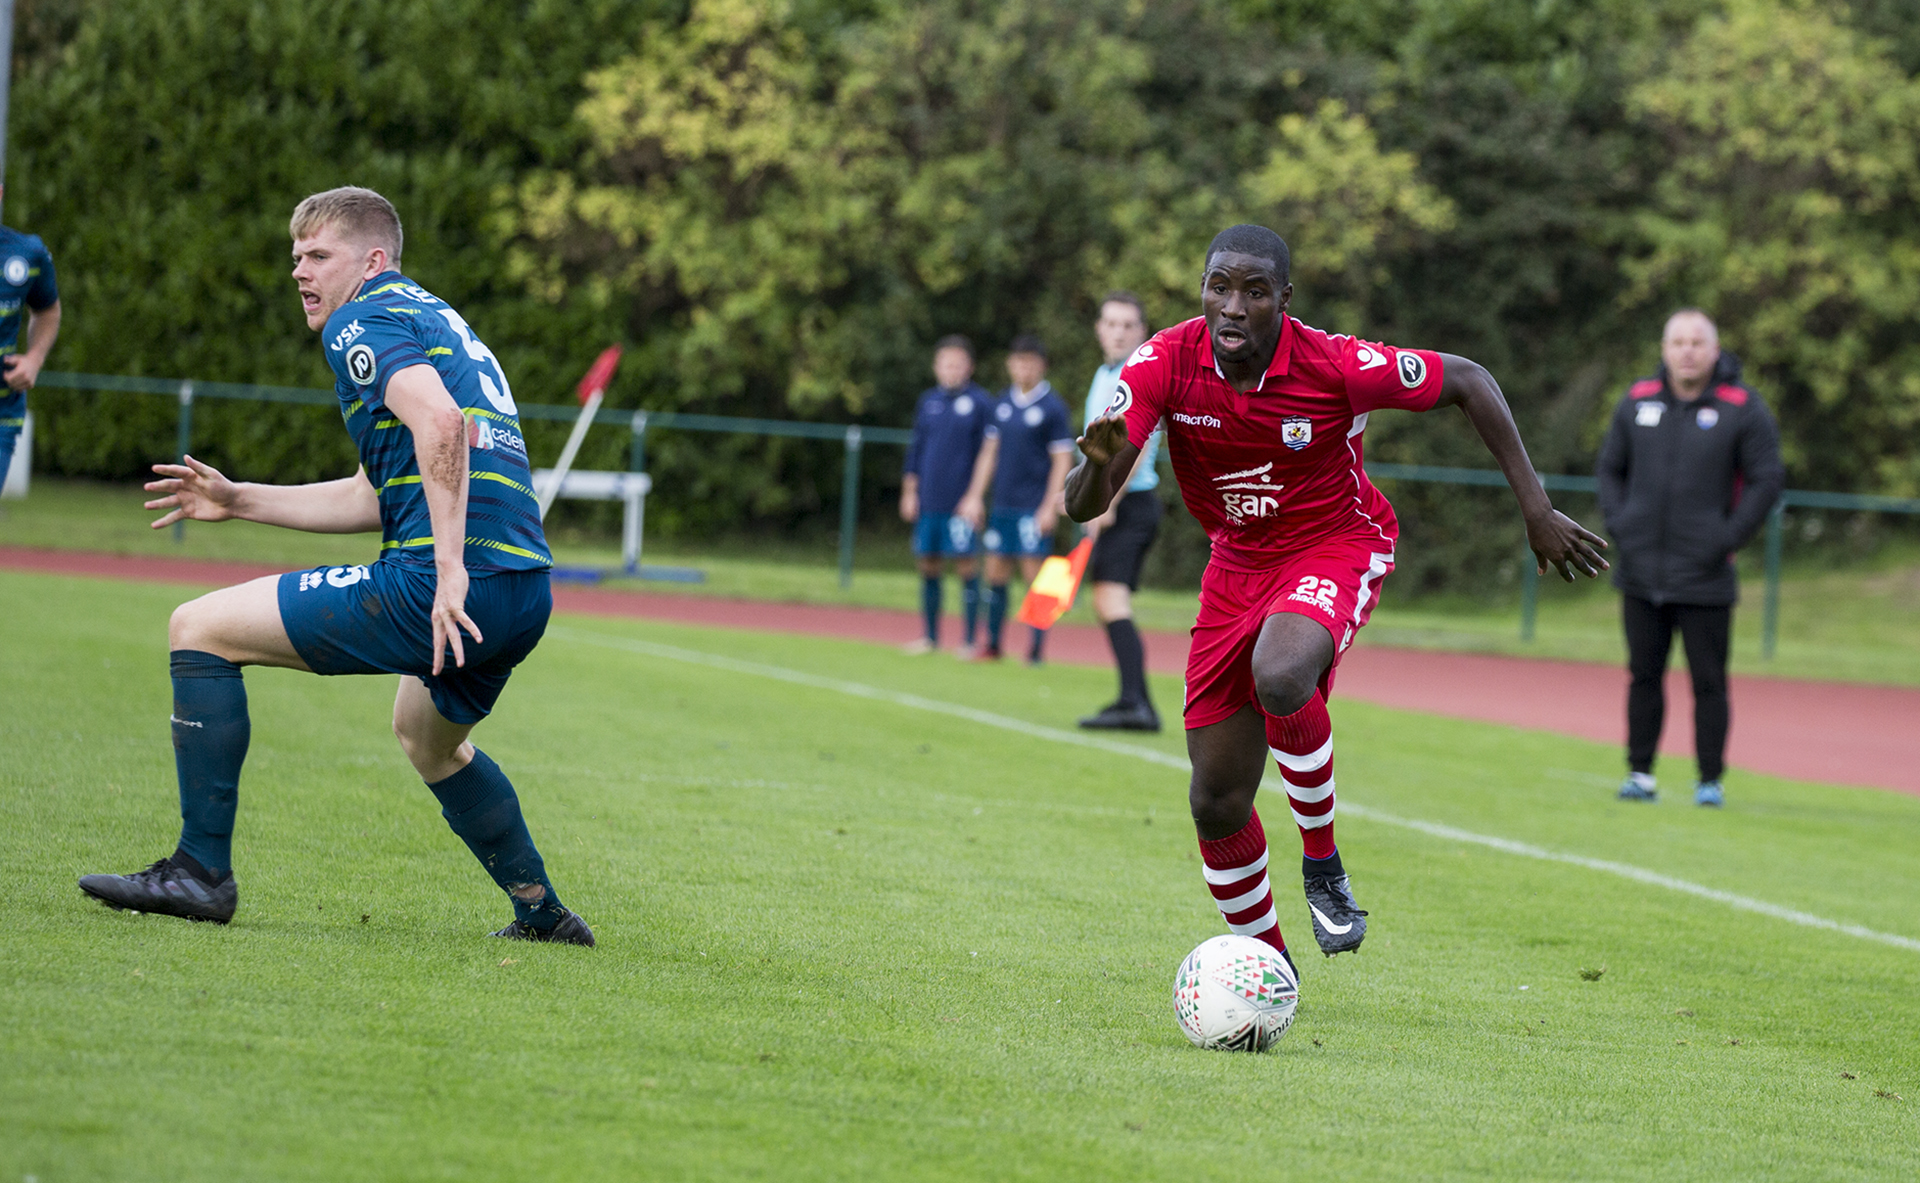 Michael Bakare turns the Cardiff Met defence in the second half - © NCM Media